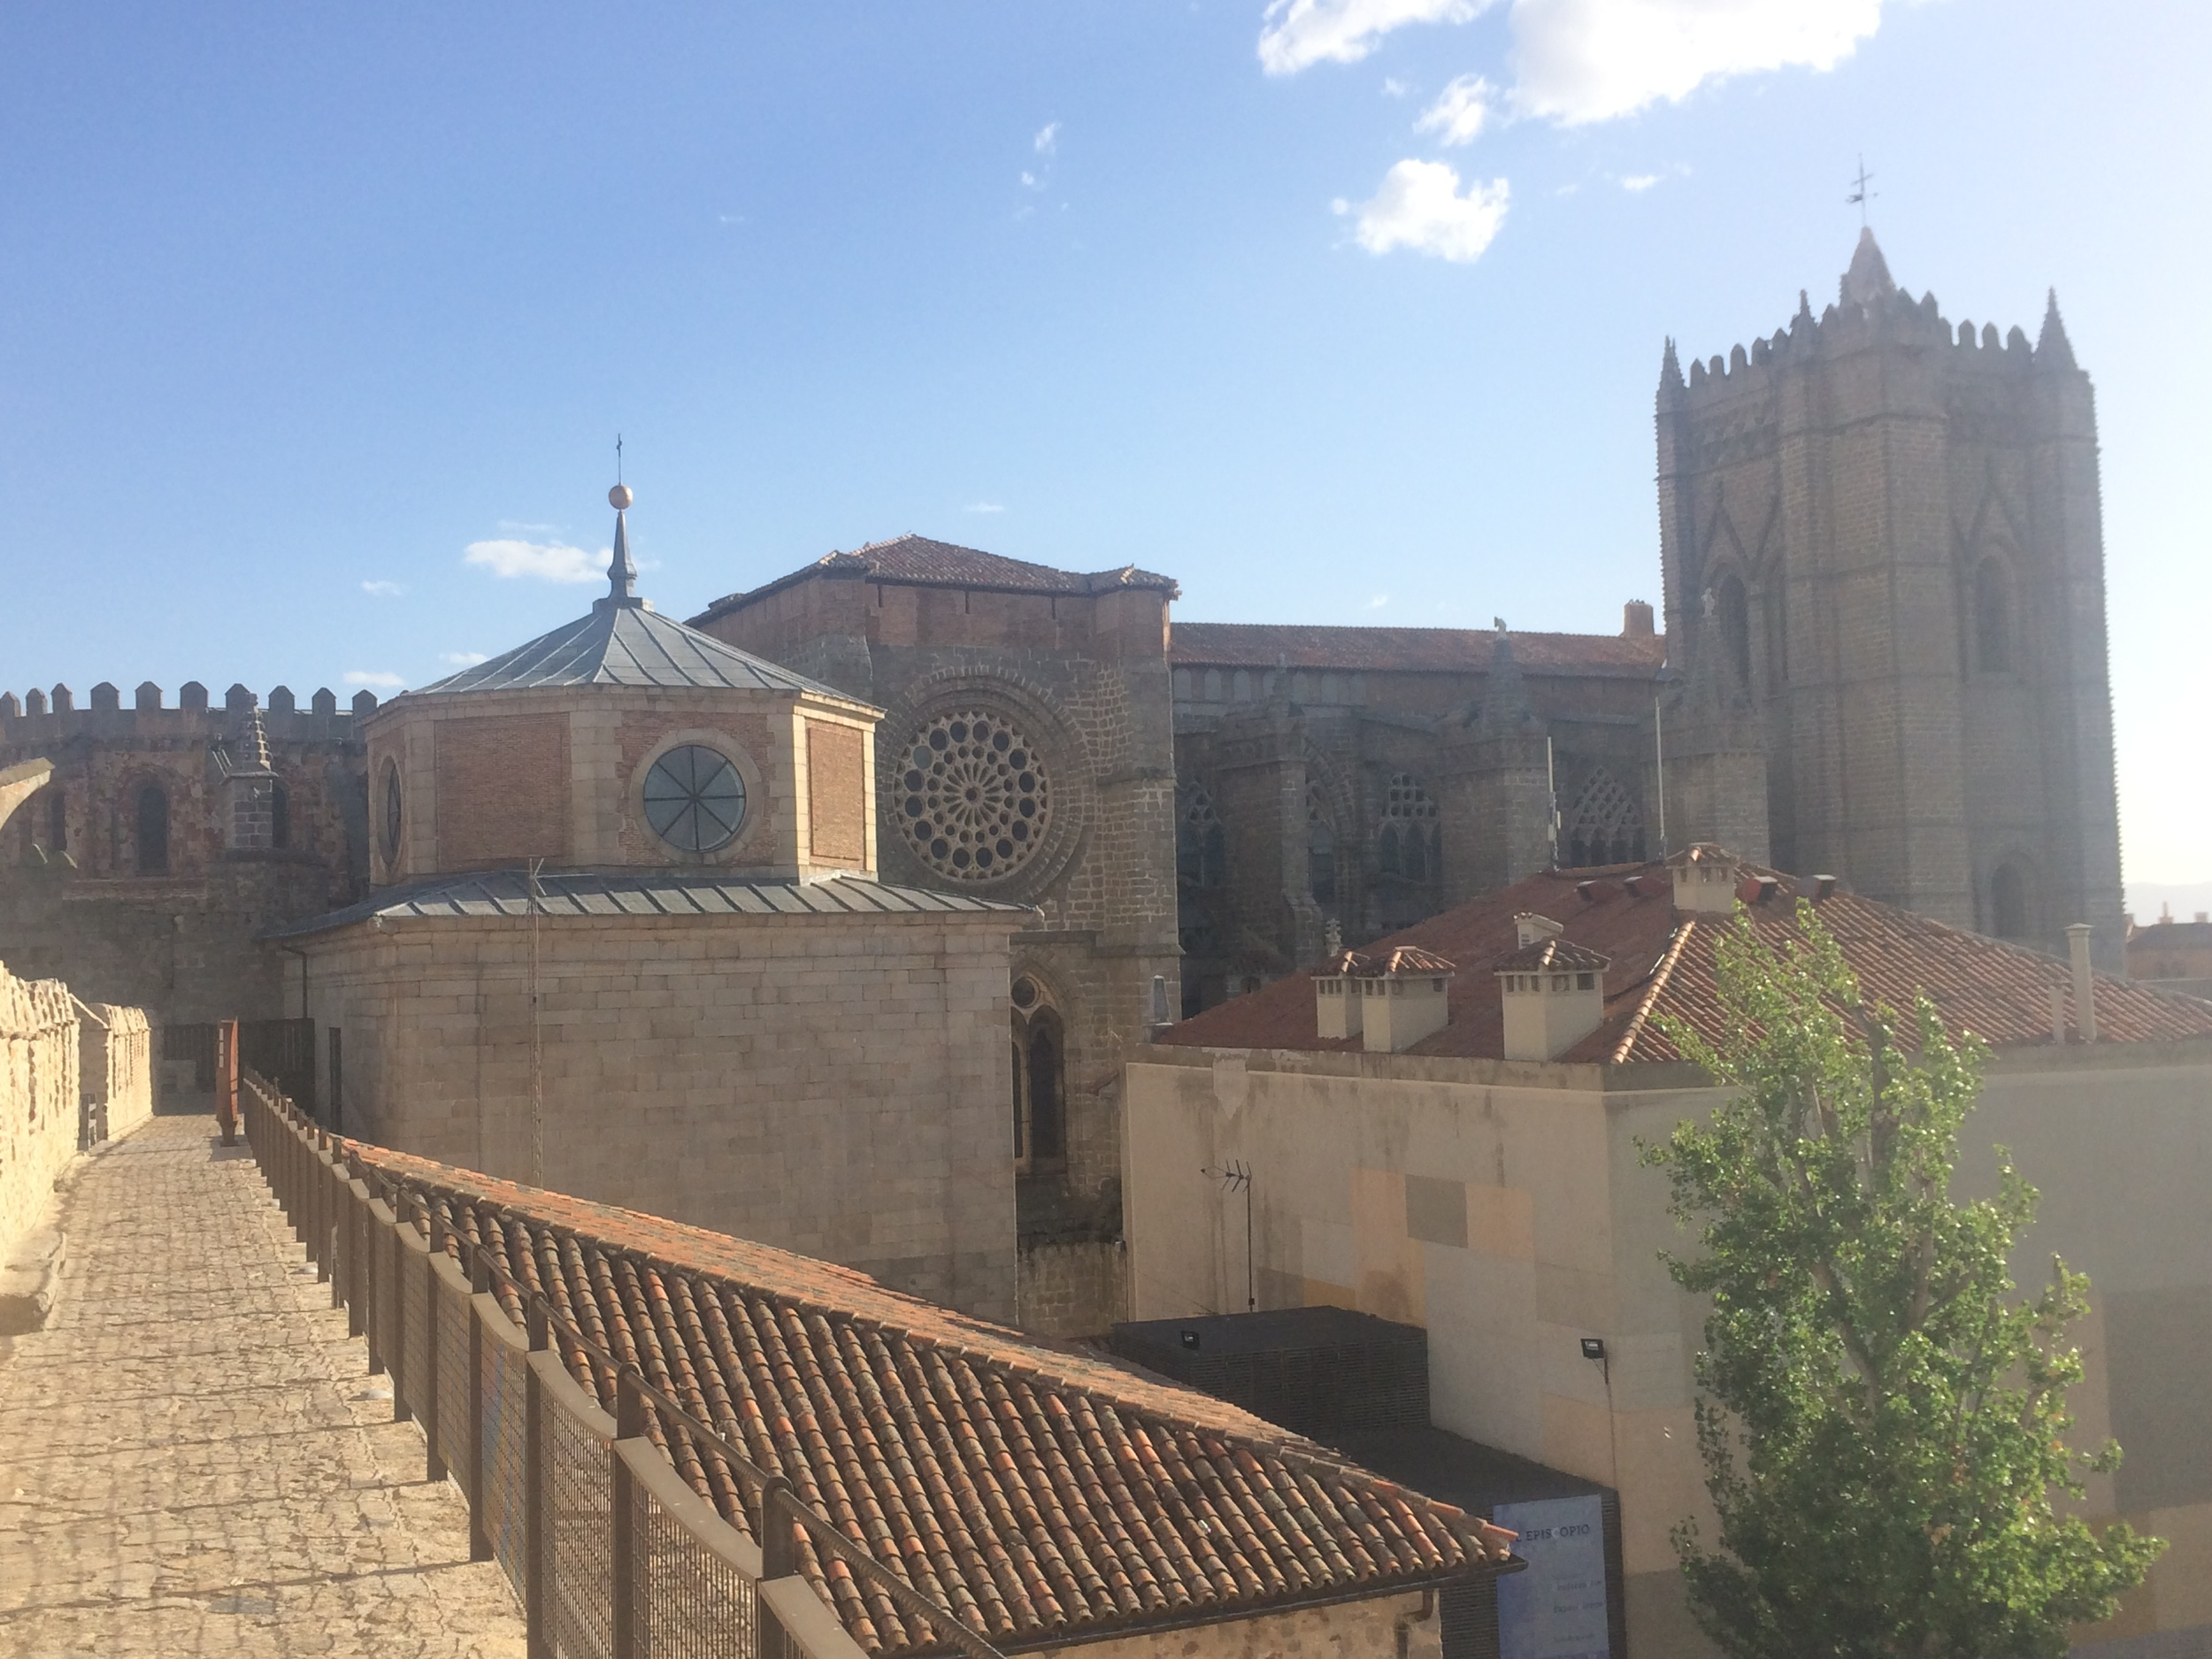 The view from the wall in Avila.